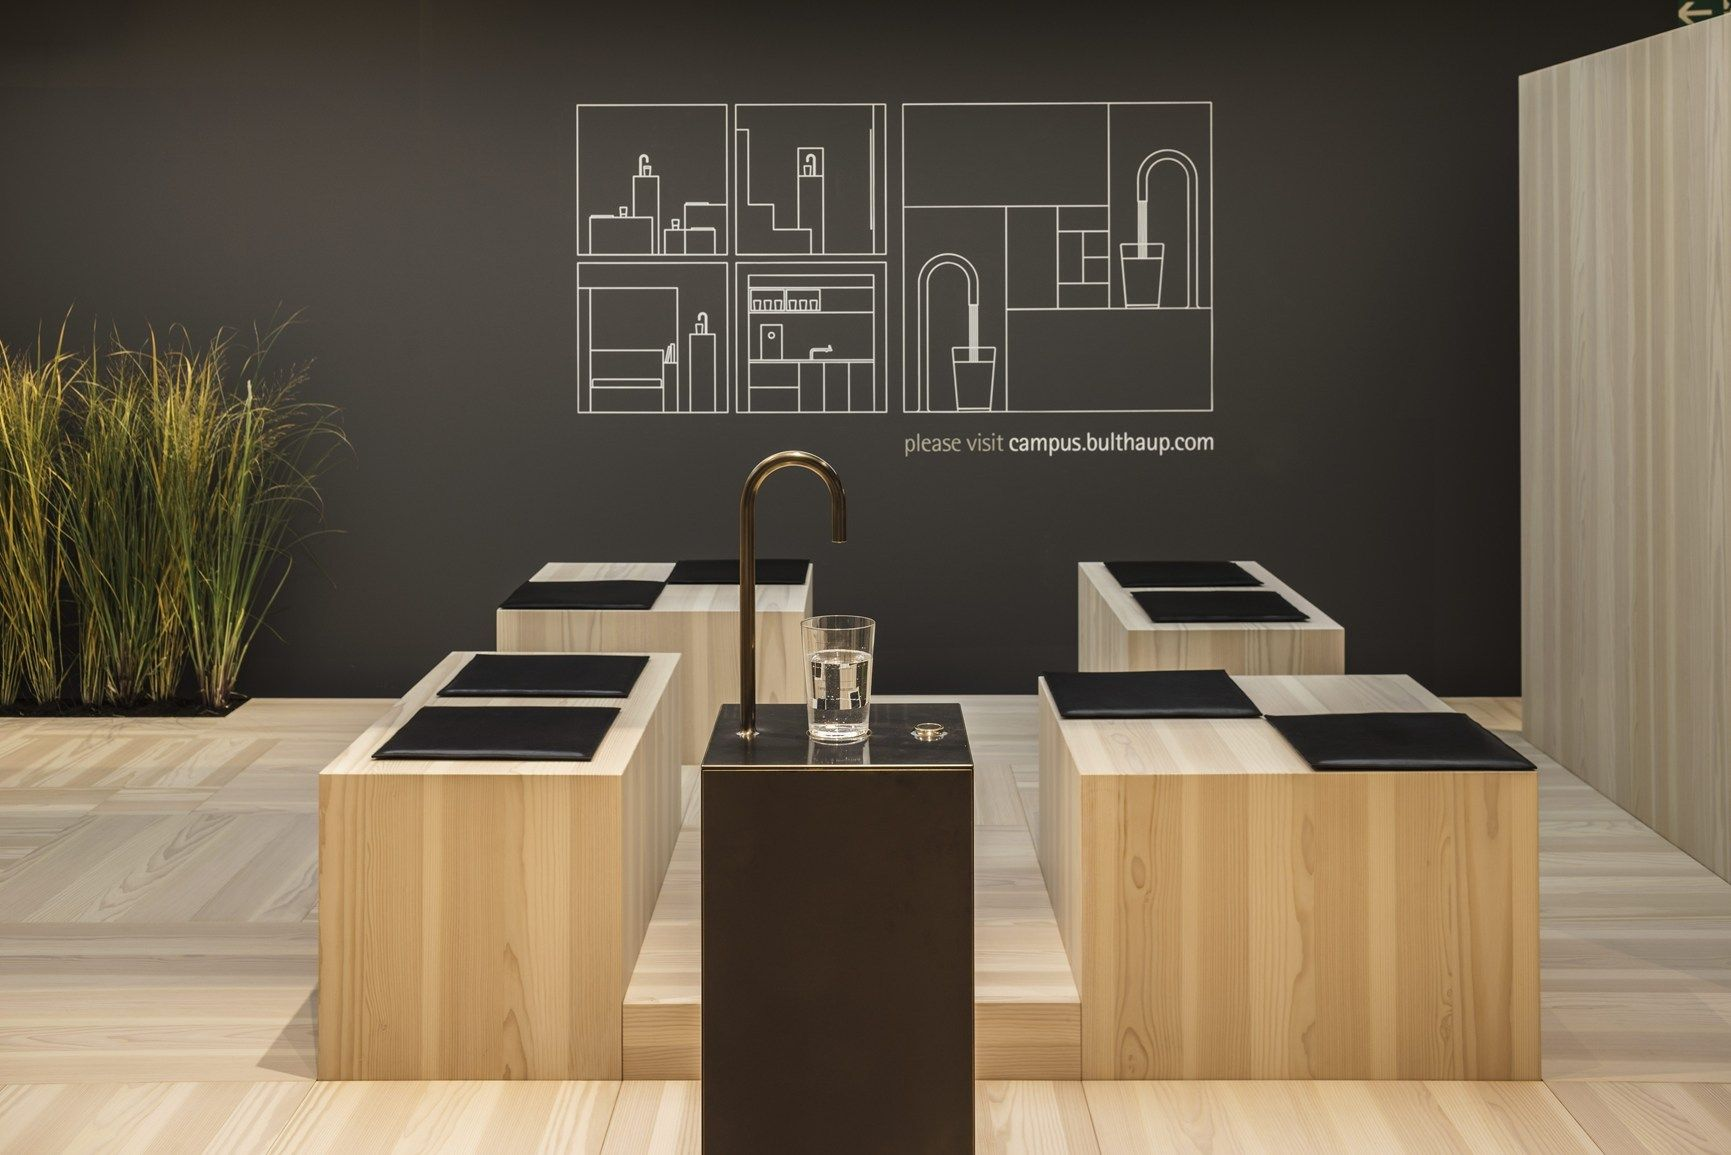 Bulthaup Bodenkirchen bulthaup archiproducts